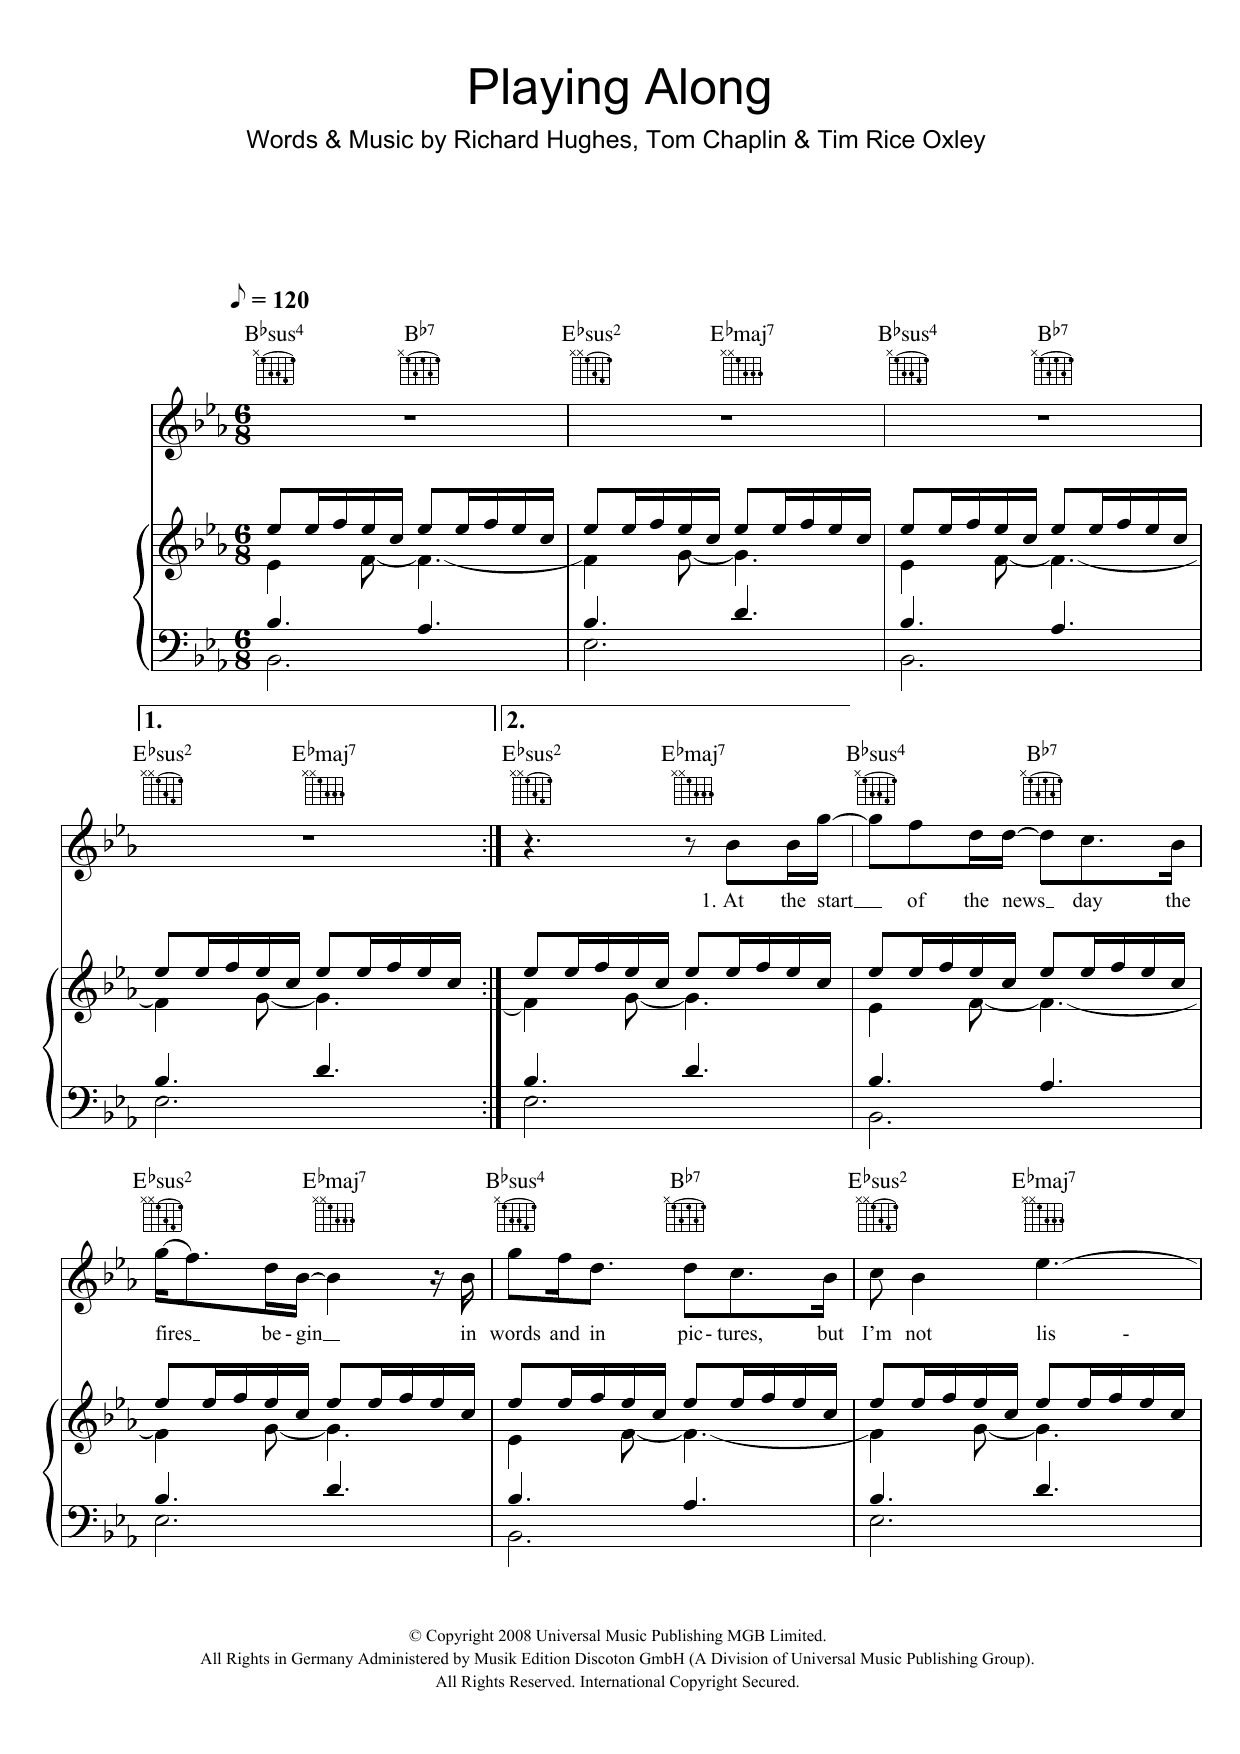 Keane Playing Along sheet music preview music notes and score for Piano, Vocal & Guitar including 6 page(s)